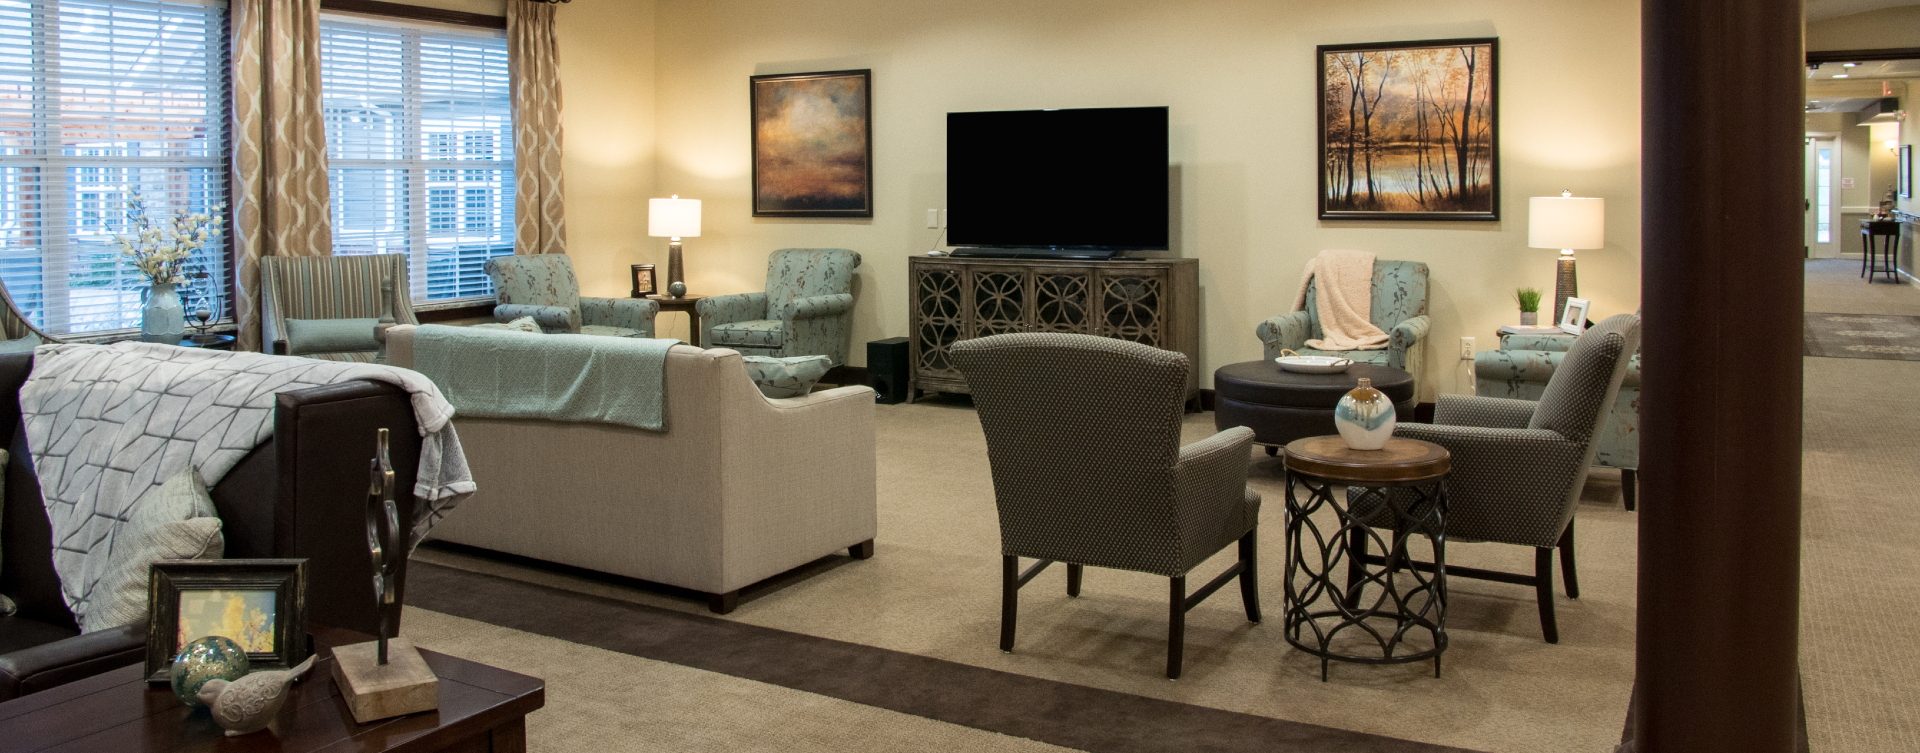 Enjoy a good book in the living room at Bickford of Spotsylvania